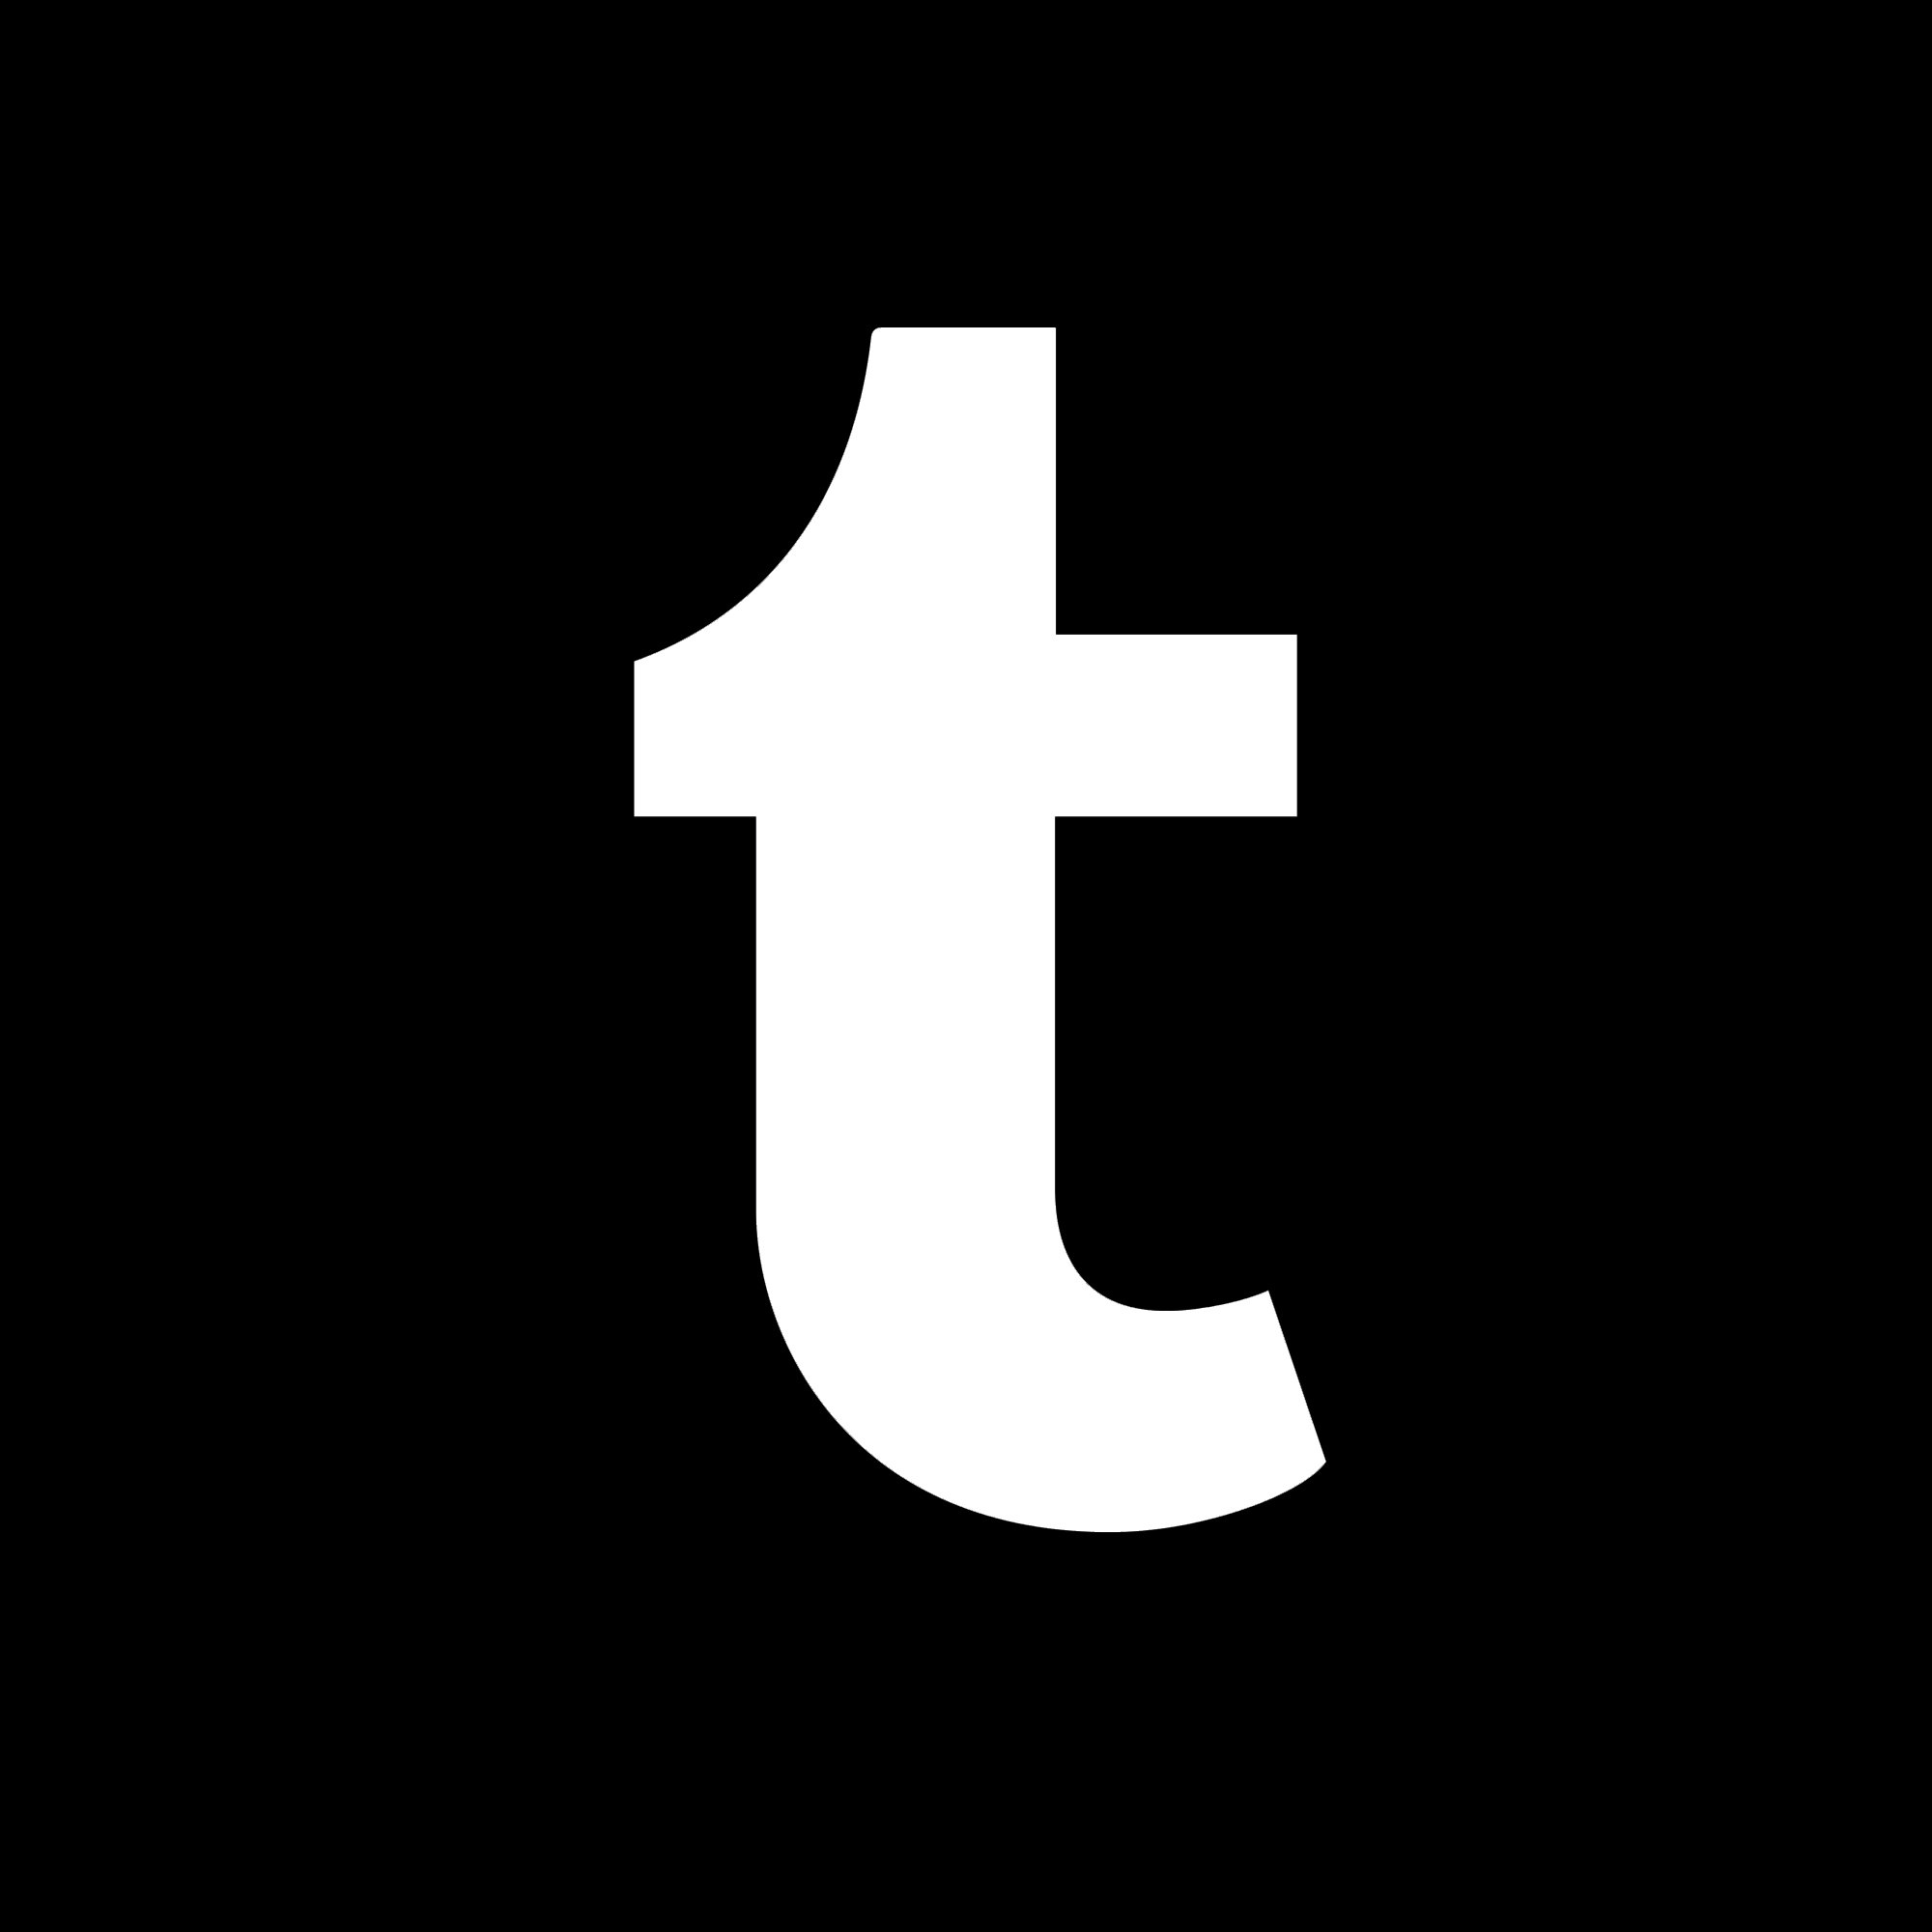 Tumblr Logo, Tumblr Symbol, Meaning, History and Evolution - photo#7